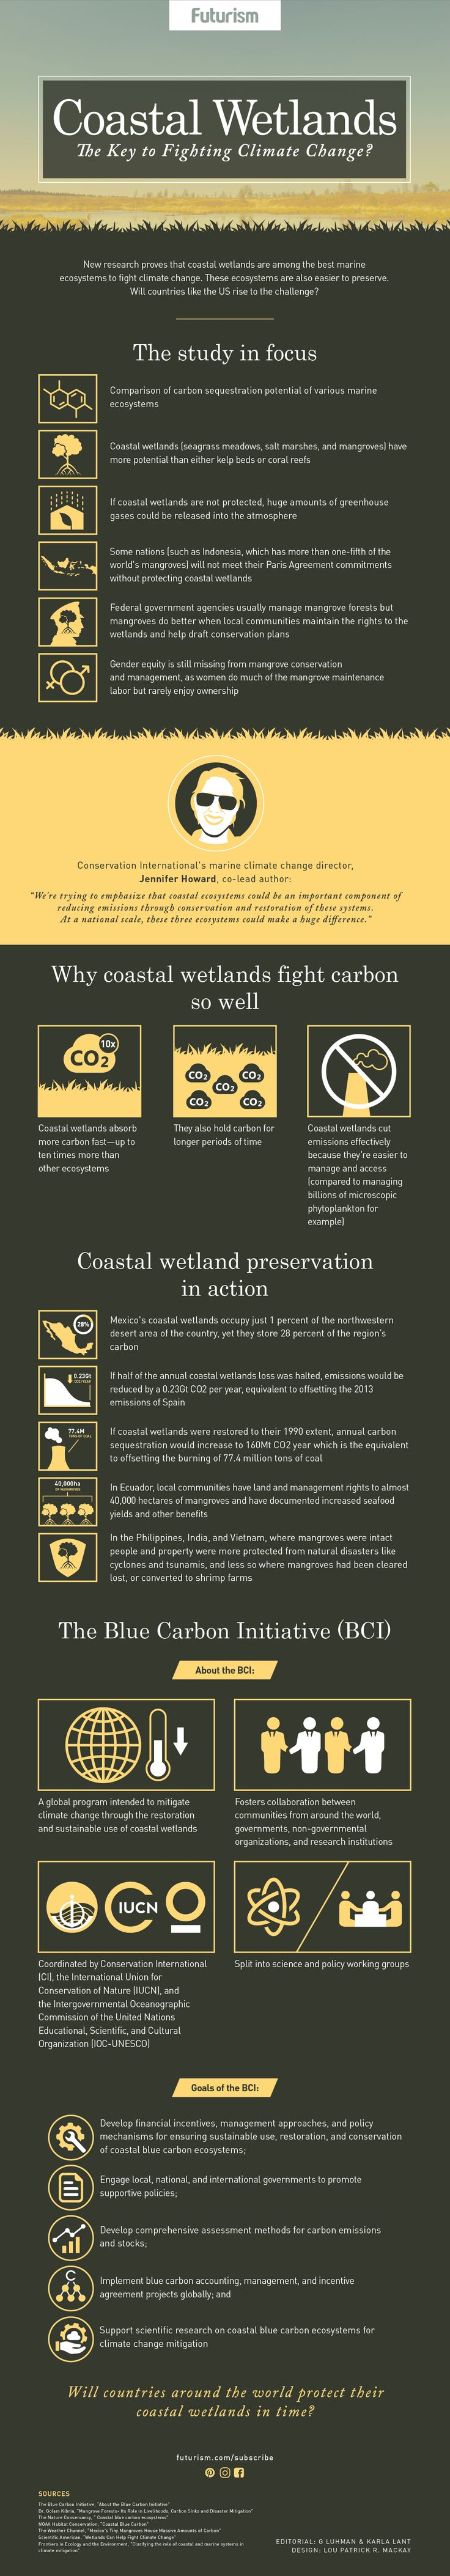 Coastal Wetlands New research proves that coastal wetlands are among the best marine ecosystems to fight climate change. Will countries like the US rise to the challenge to preserve and restore coastal wetlands?